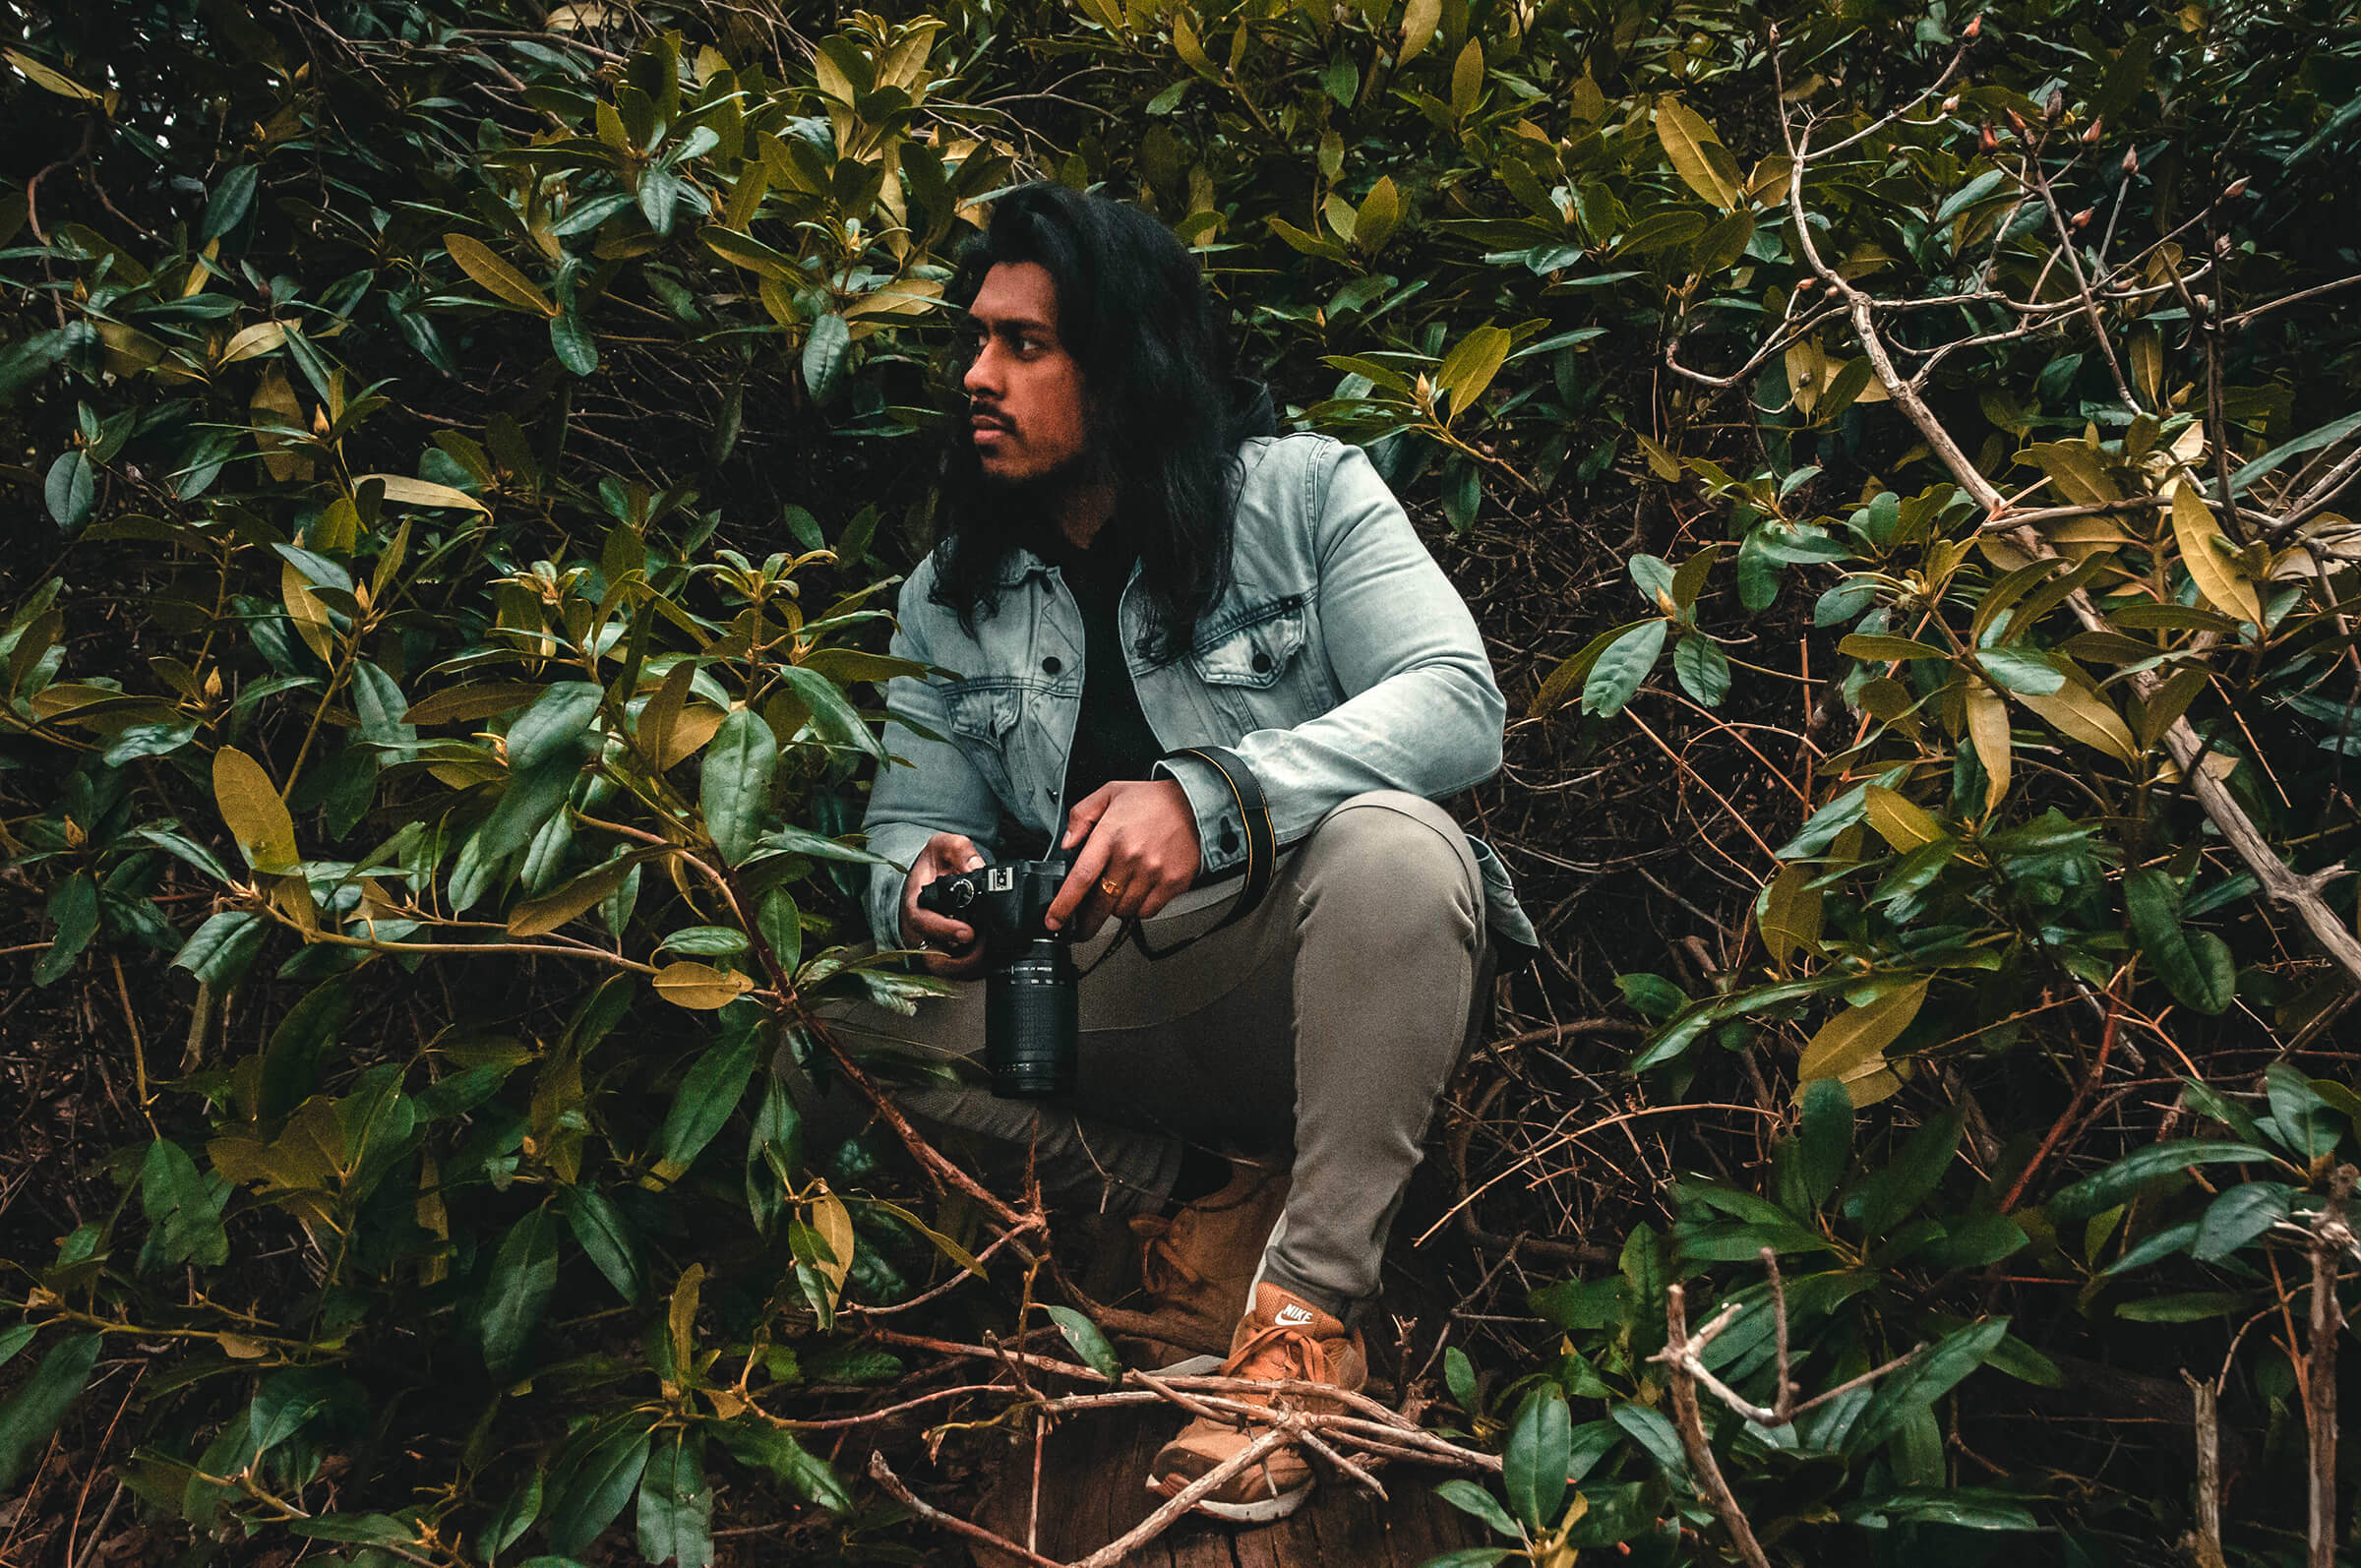 Photographer Crouching In The Woods